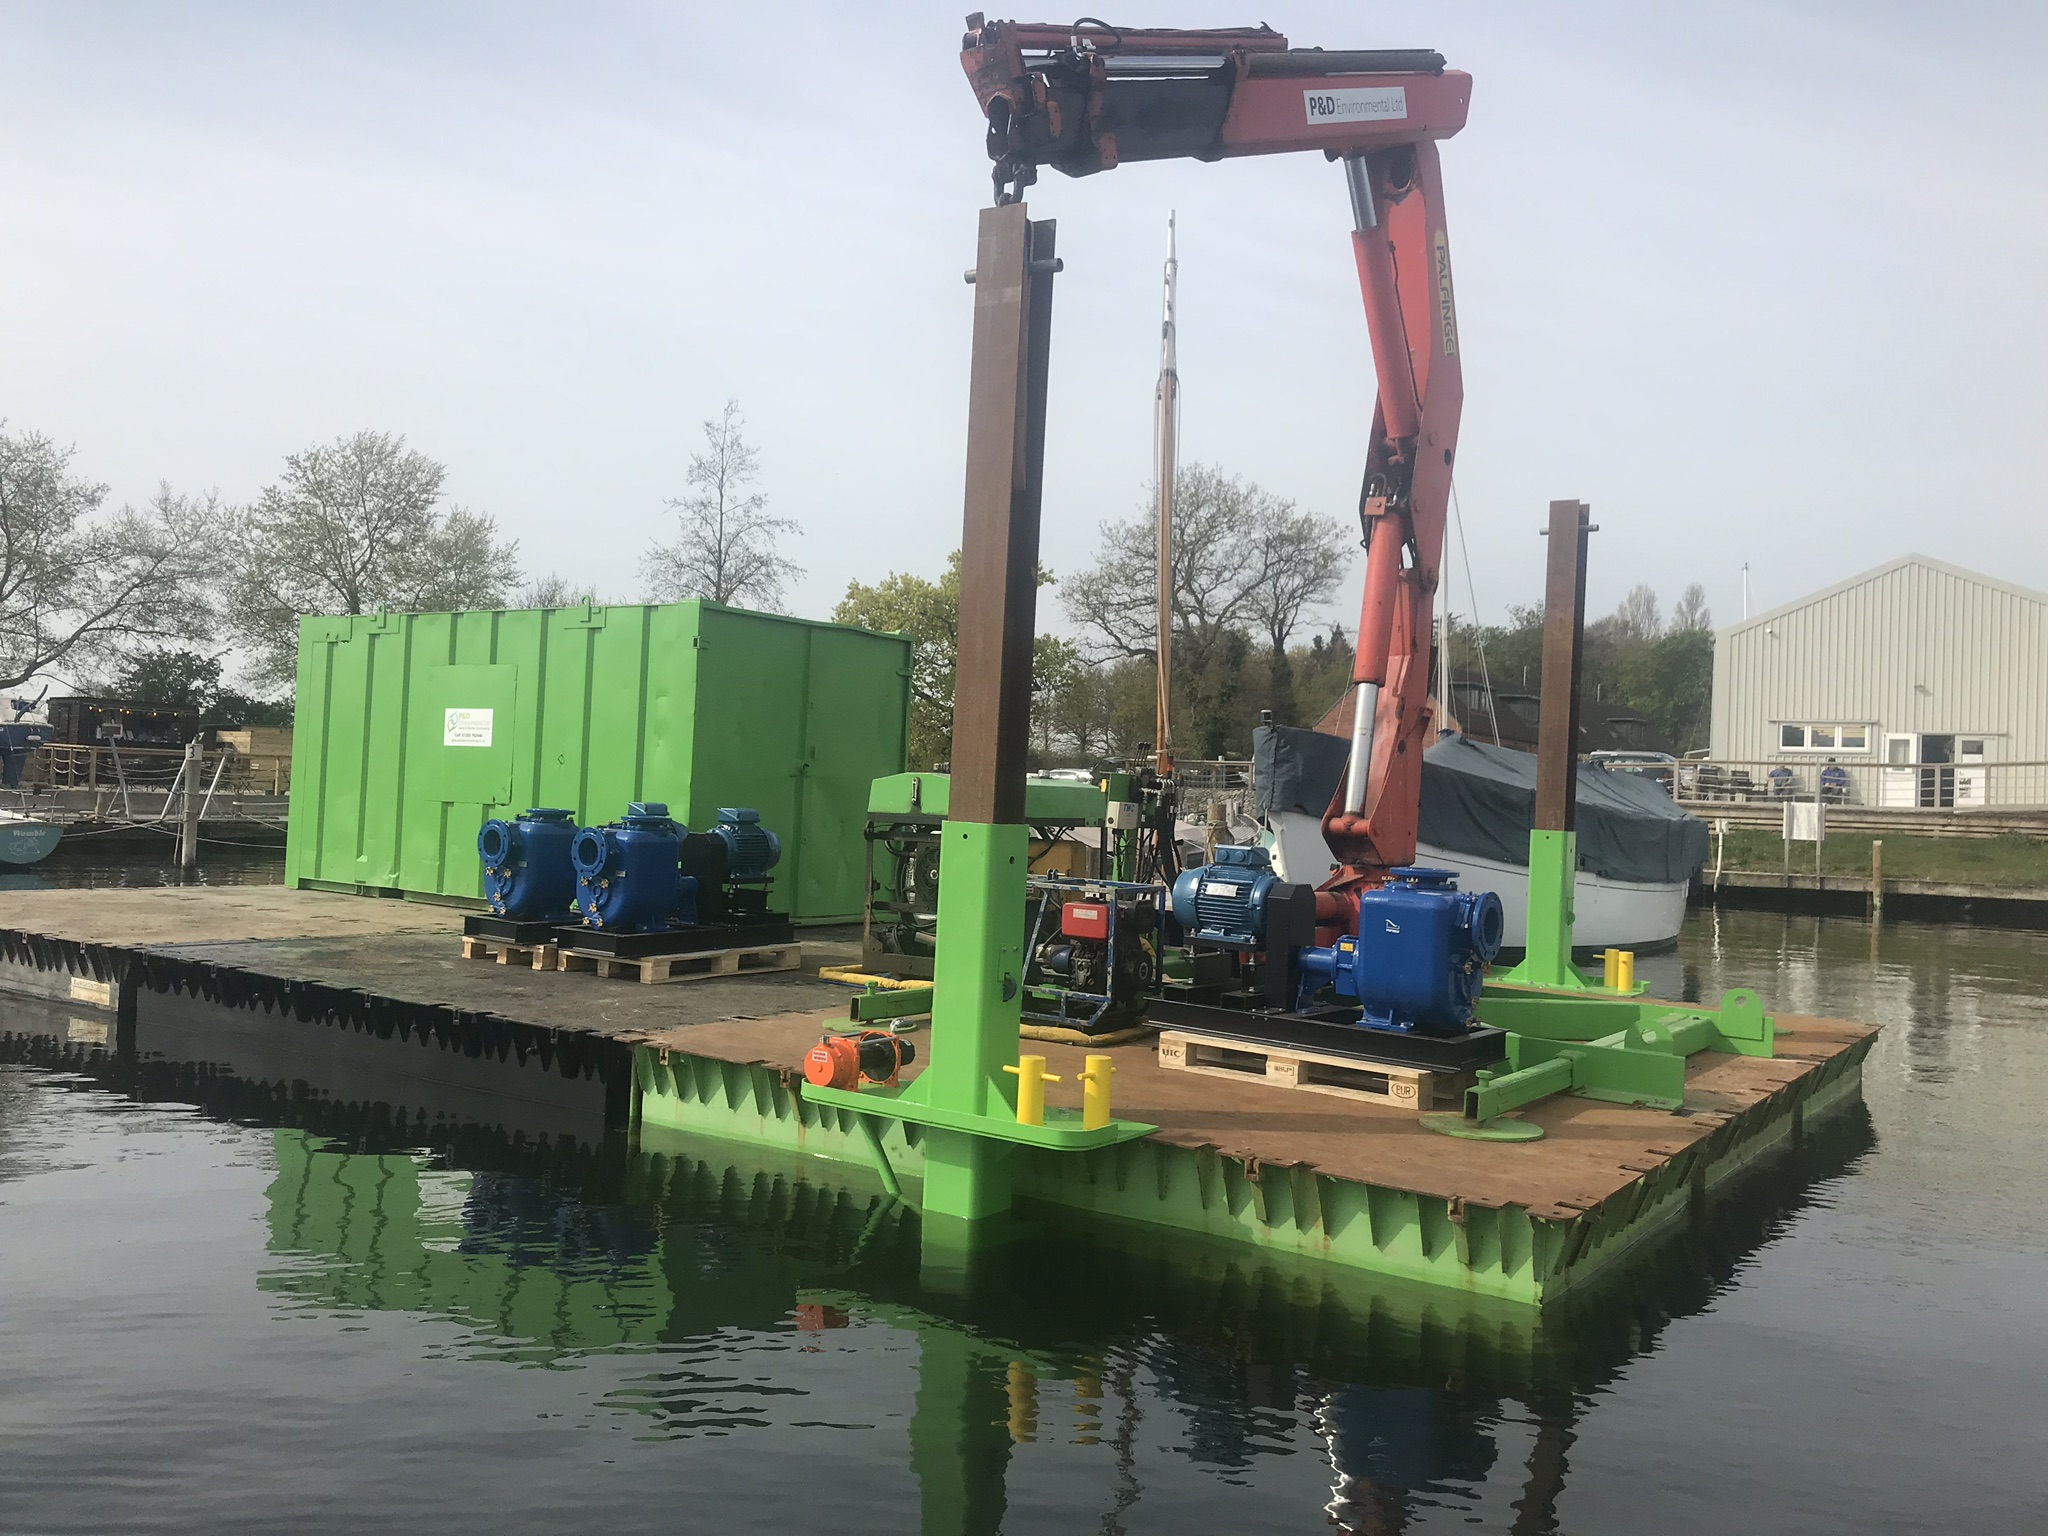 Nato Pontoons and Hiab Crane